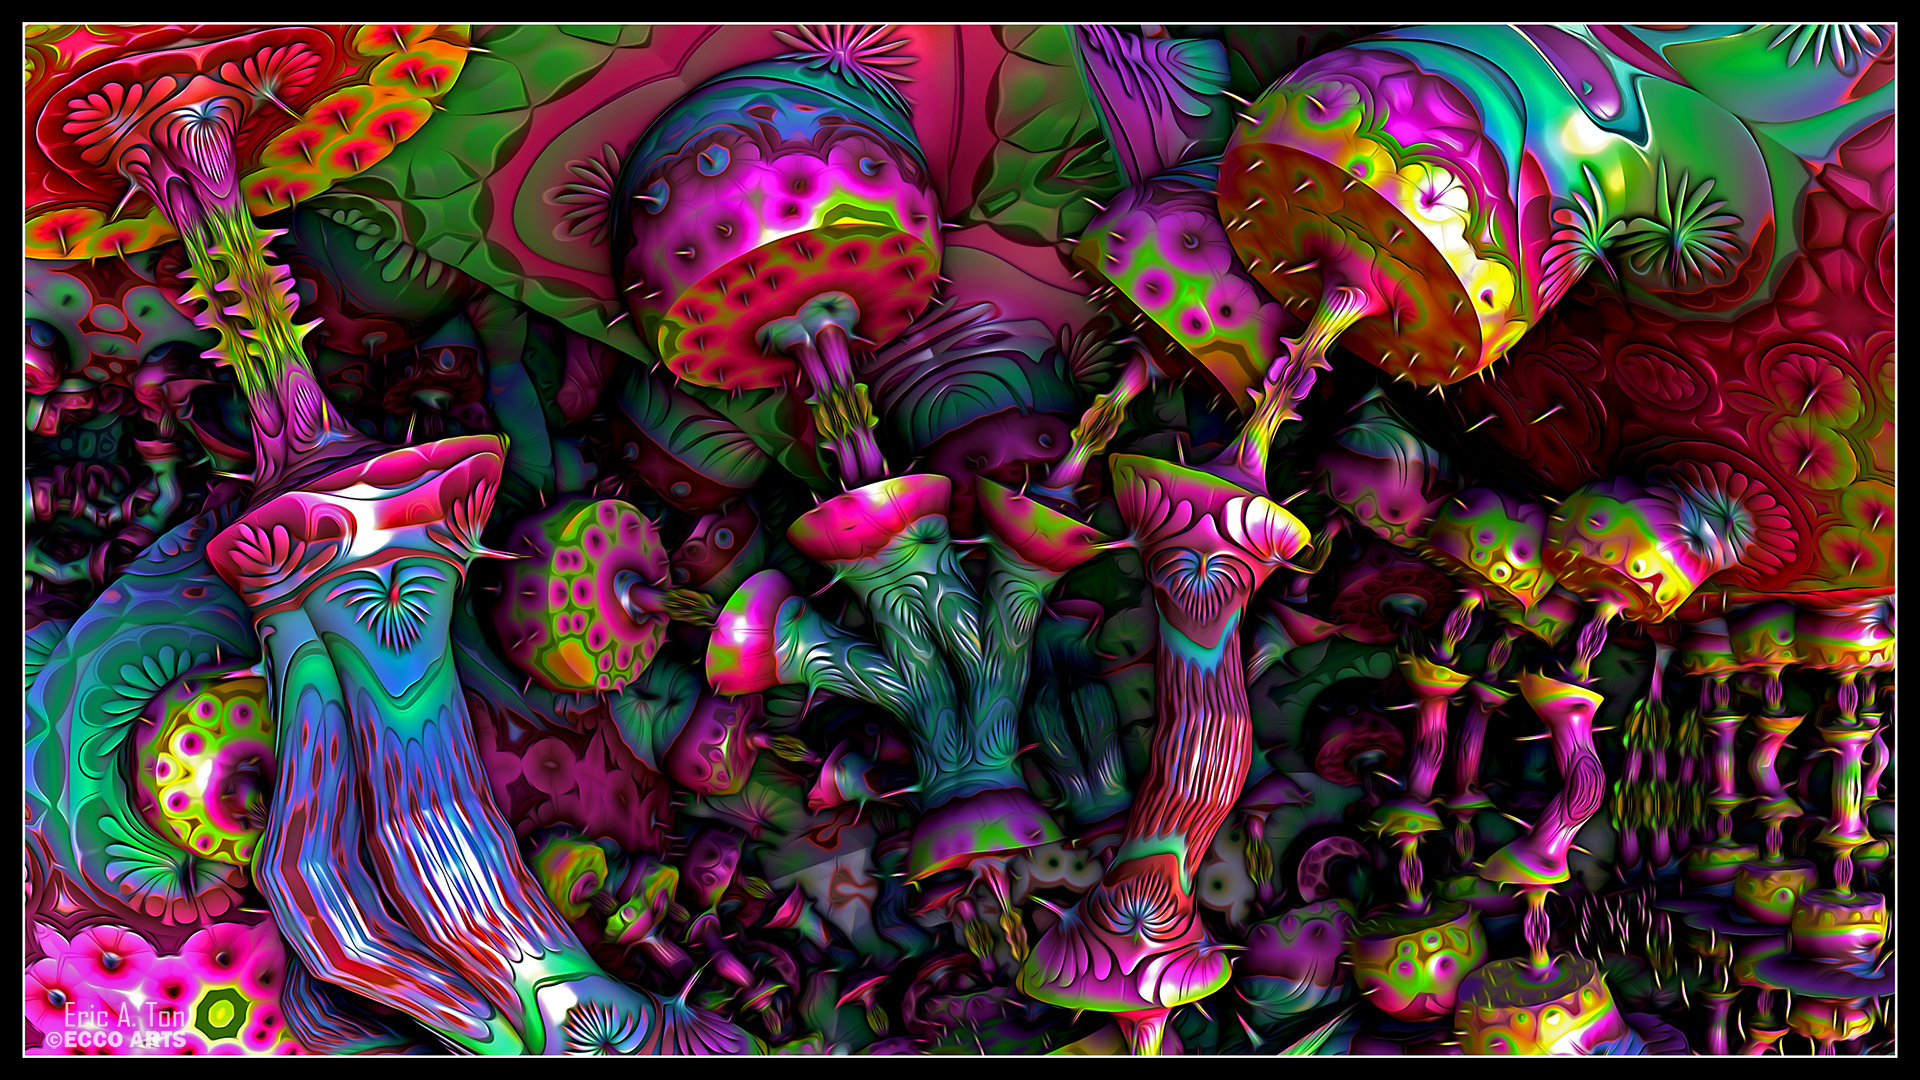 Abstract Psychedelic Art Parallax Hd Iphone: Trippy Stoner Wallpaper